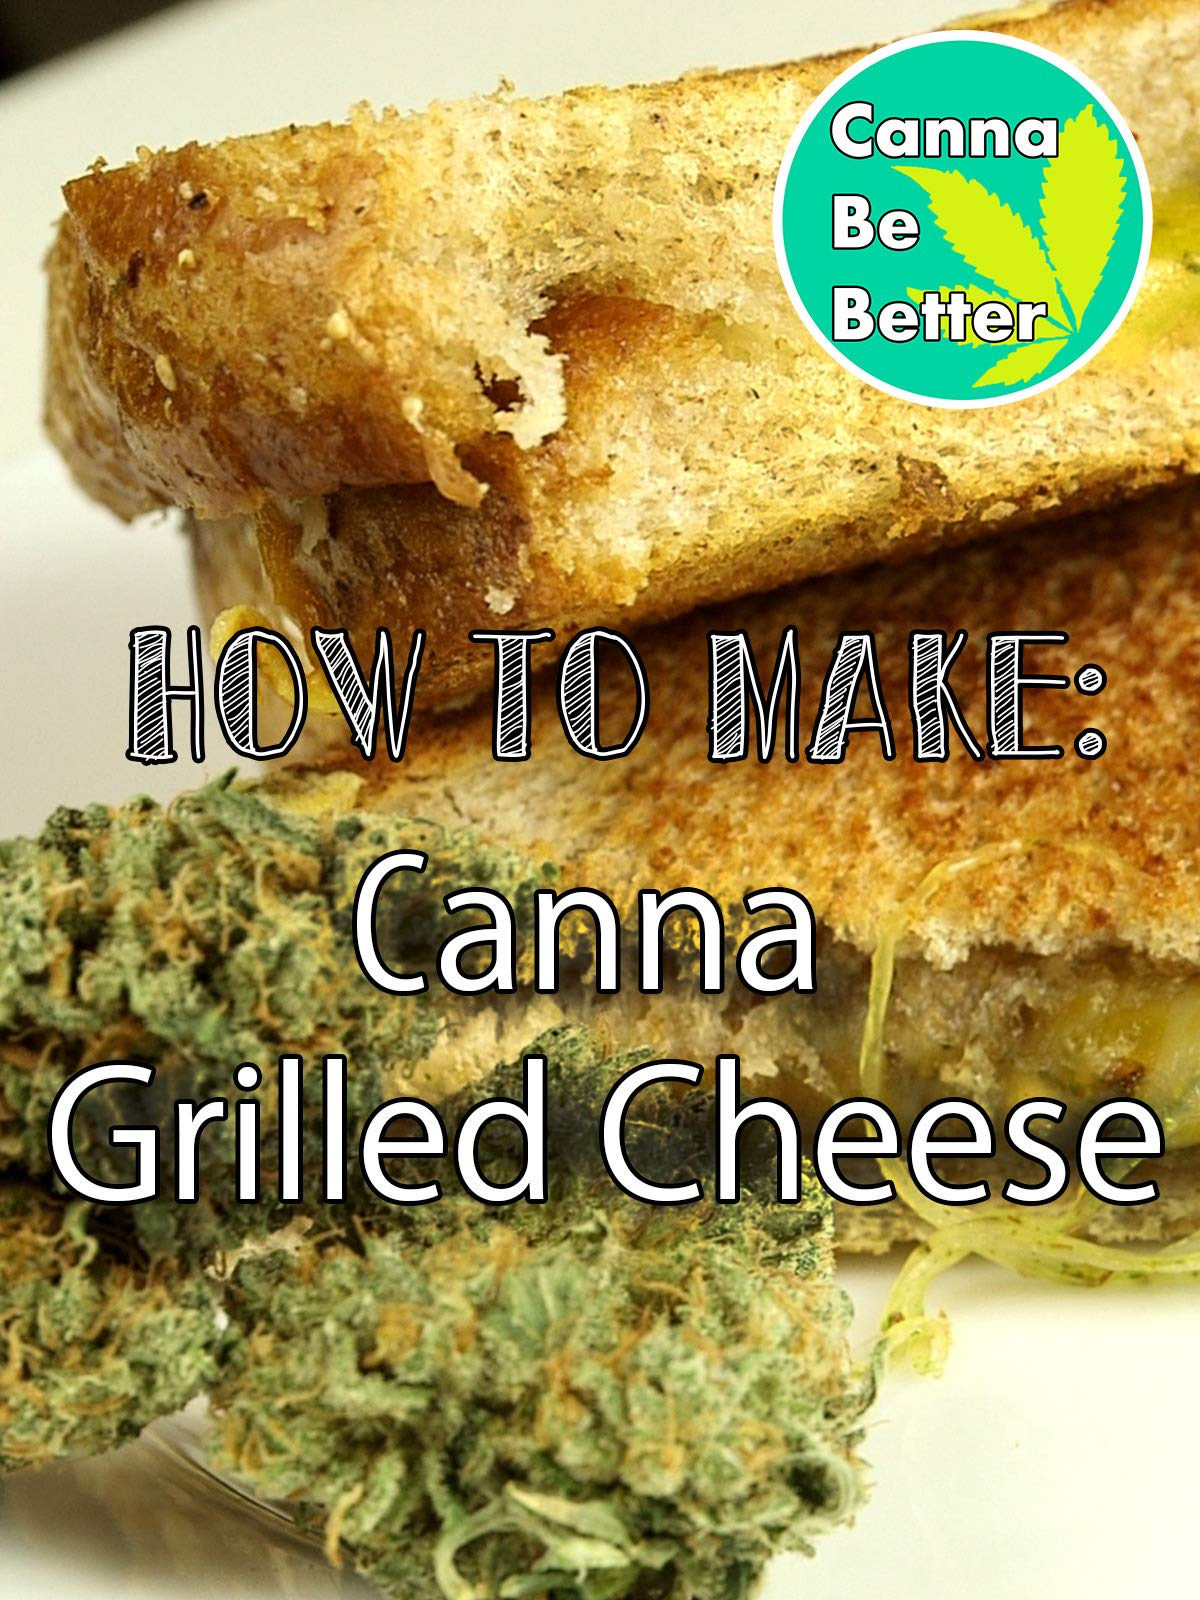 CannaBeBetter: How to make Canna Grilled Cheese